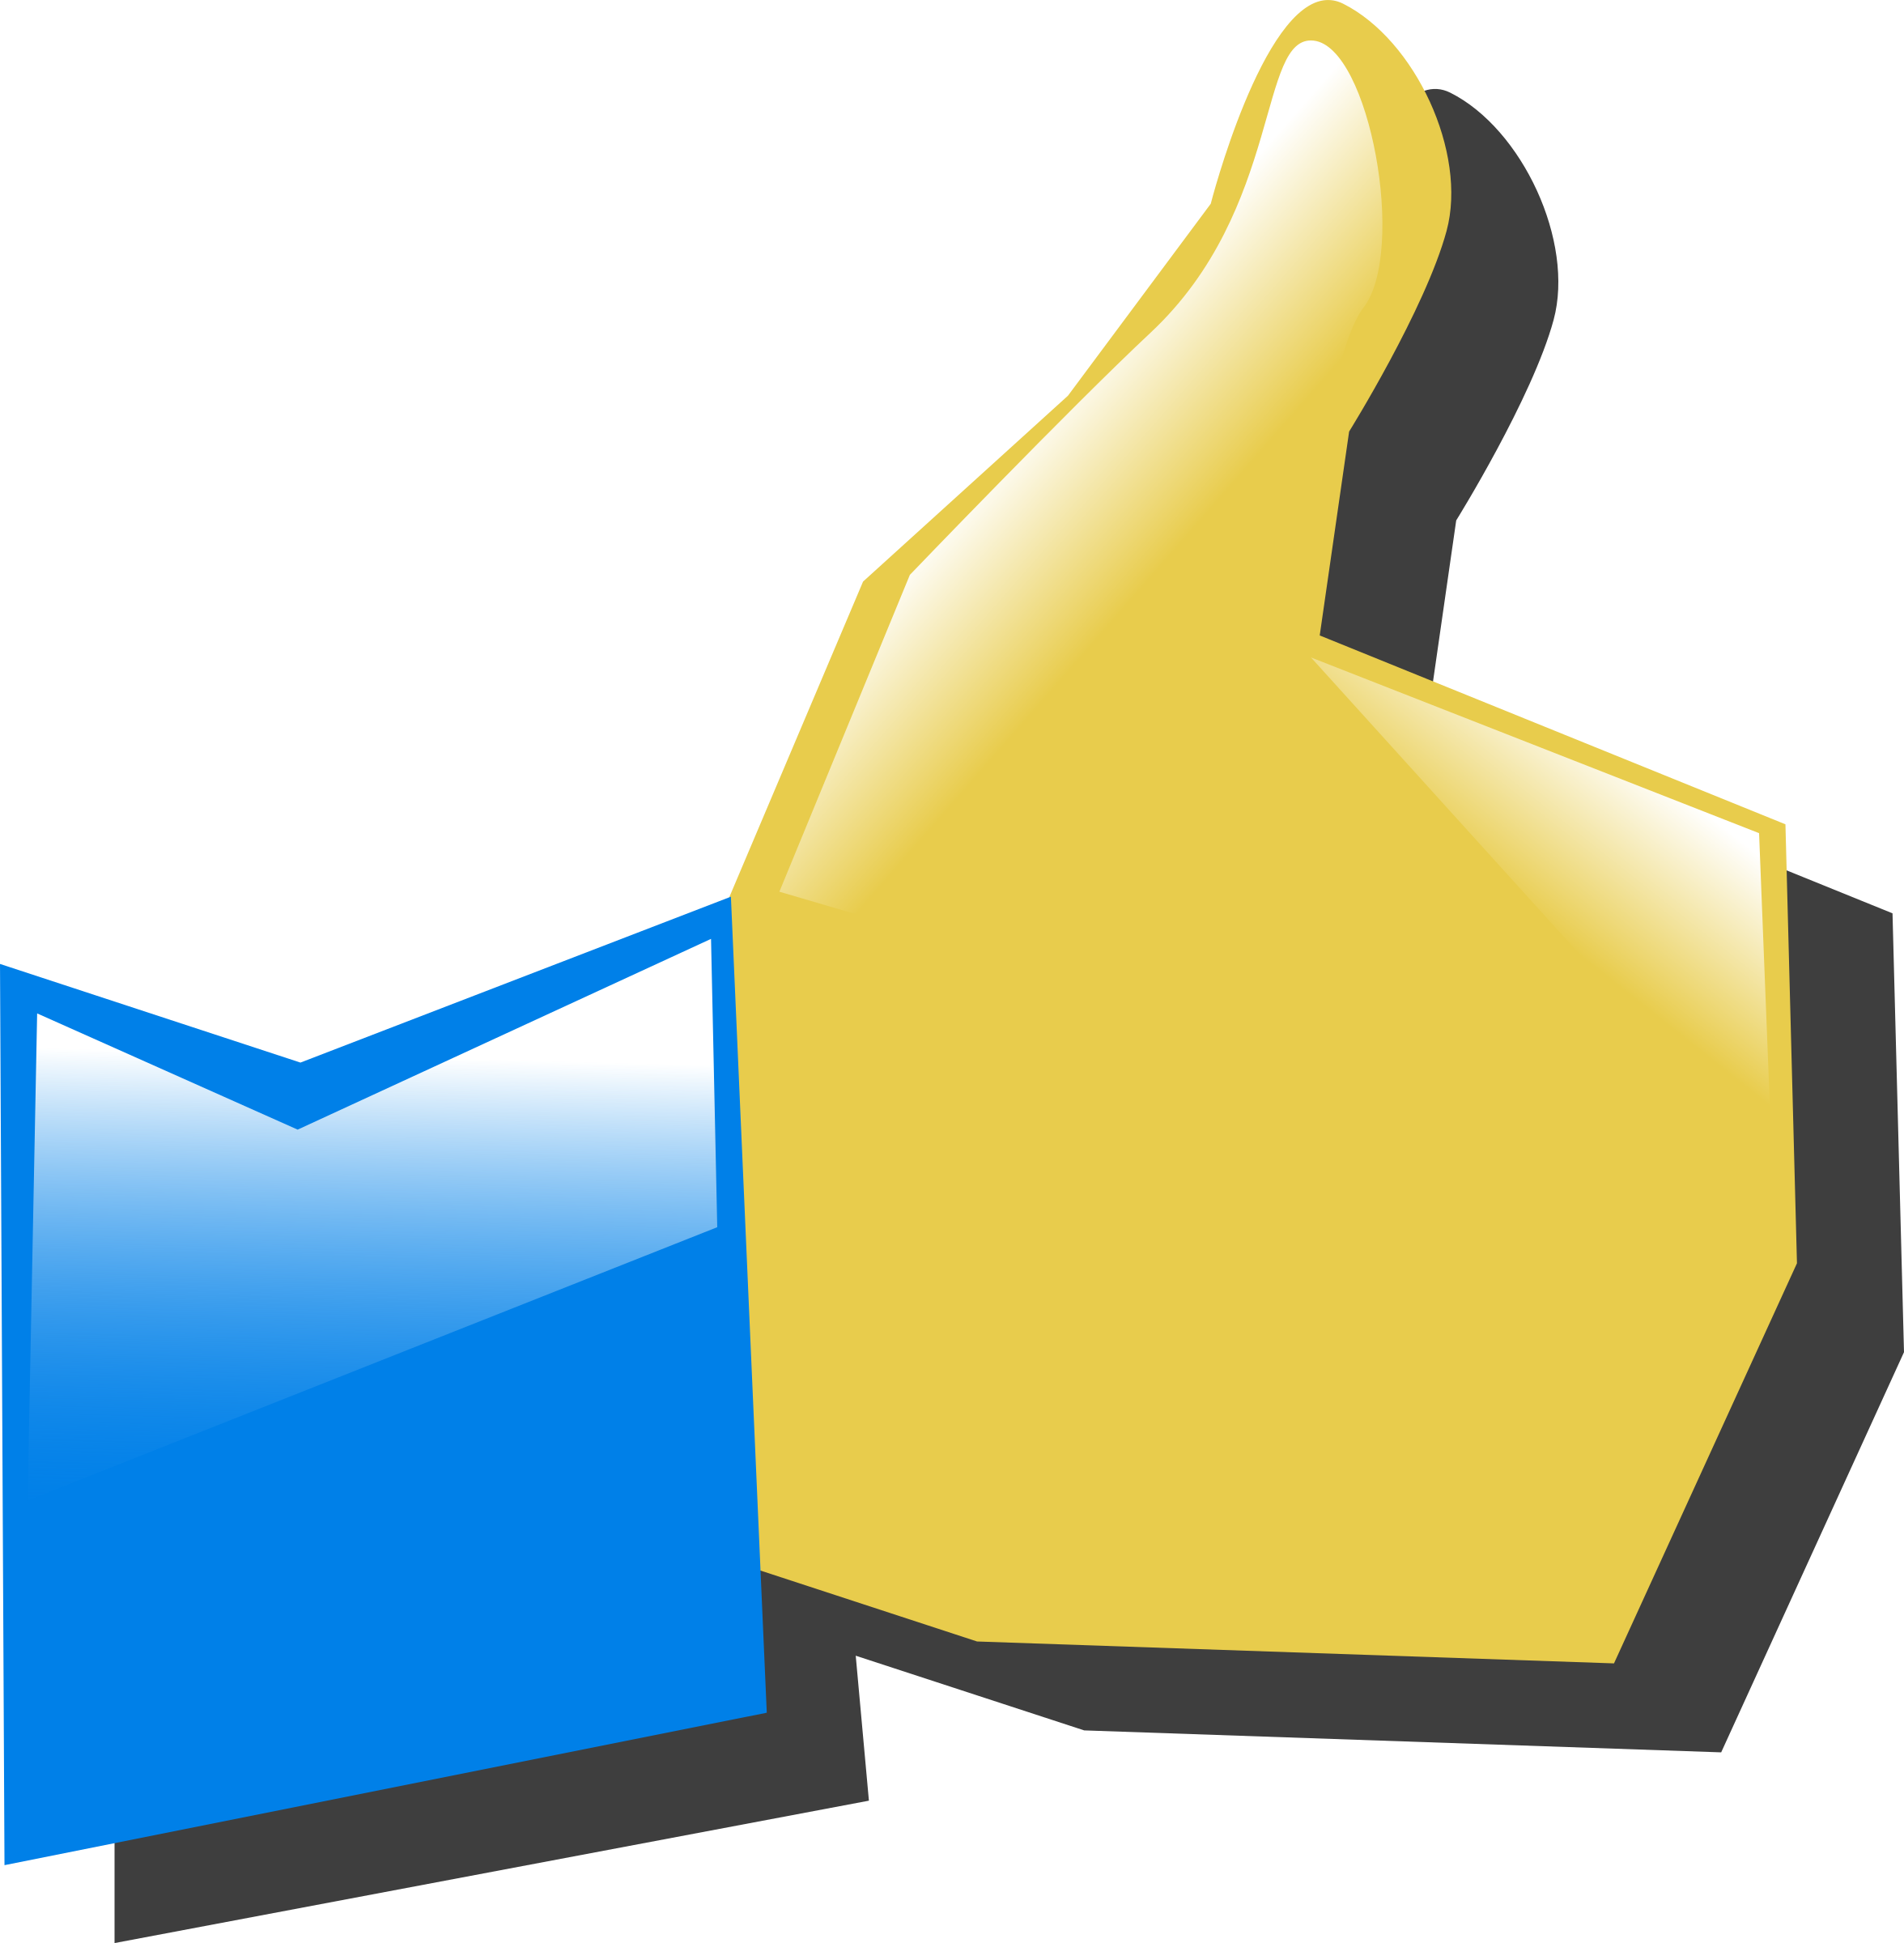 Thumbs up clipart microsoft vector library stock Gallery For > Thumbs Up Clipart Microsoft vector library stock